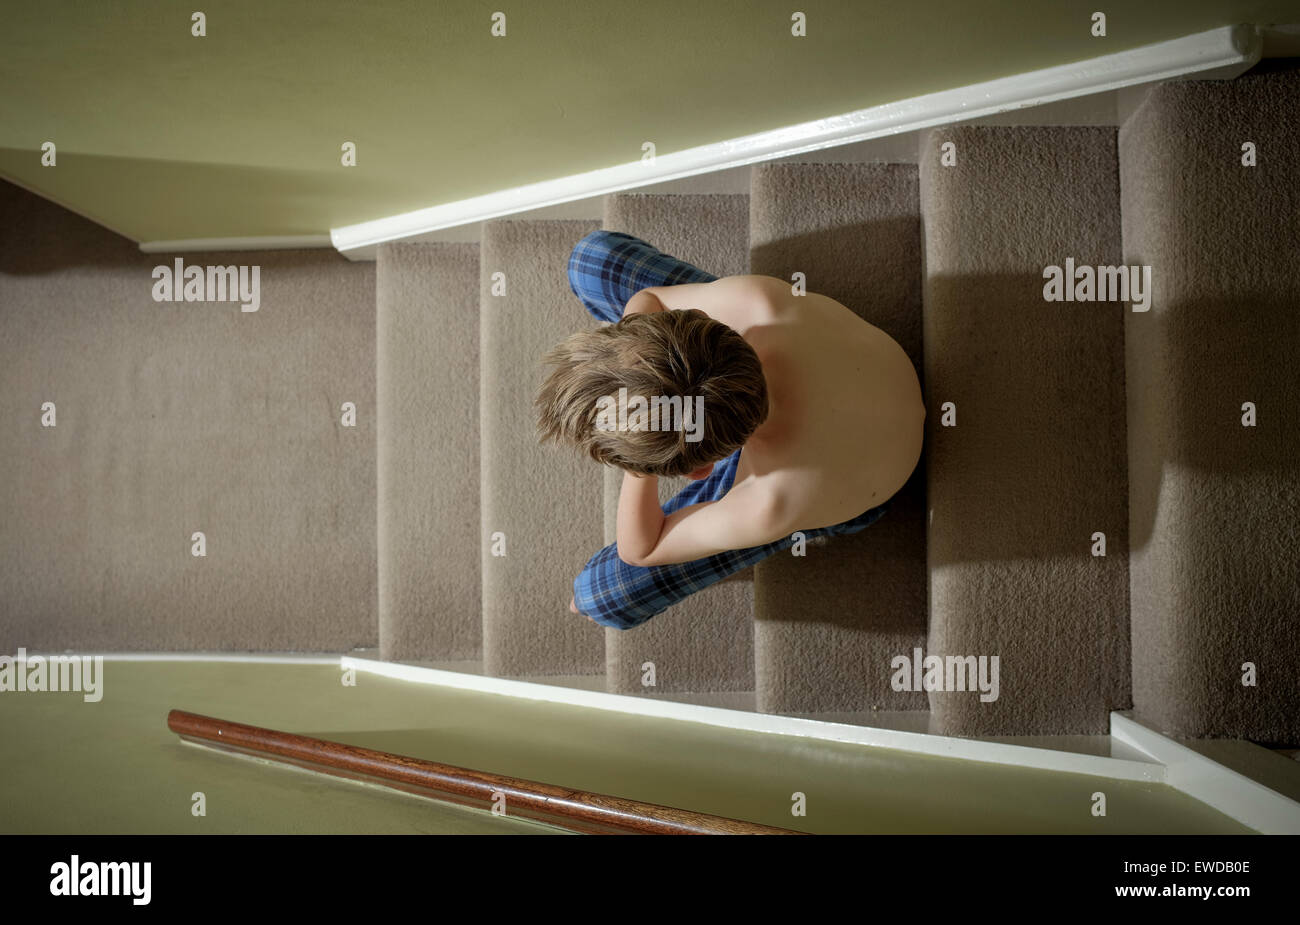 A child sitting on the stairs with his head in his hands looking upset Stock Photo